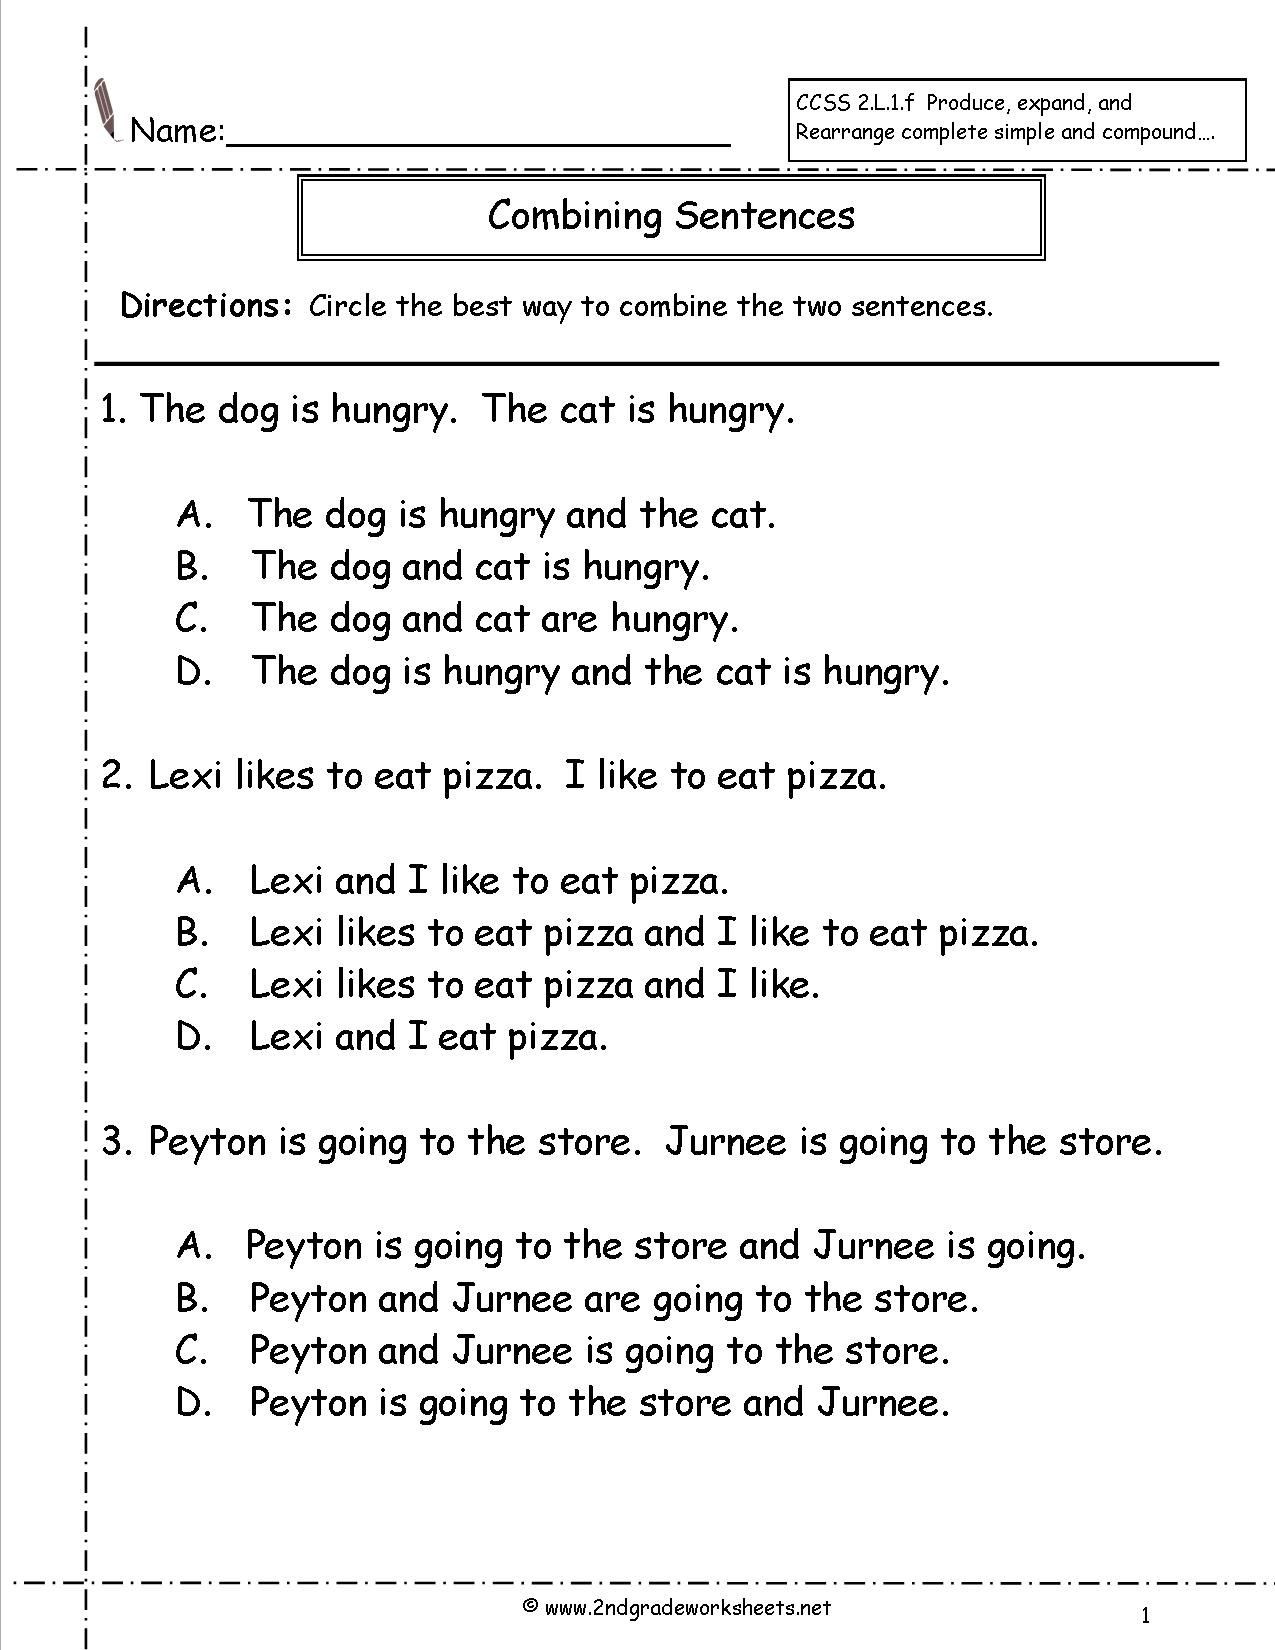 30 Simple And Compound Sentence Worksheet